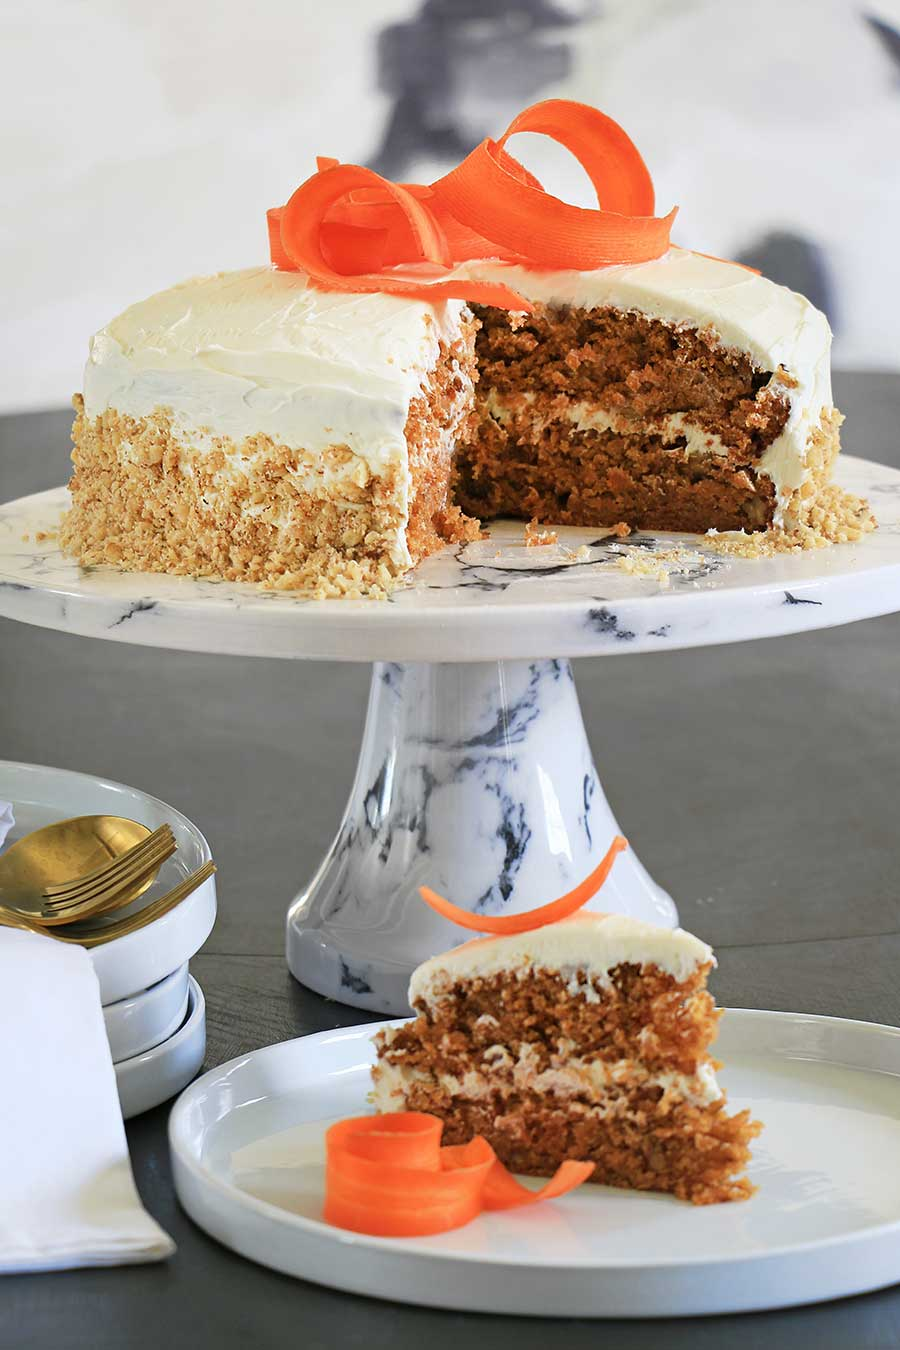 Vegan carrot cake with a slice